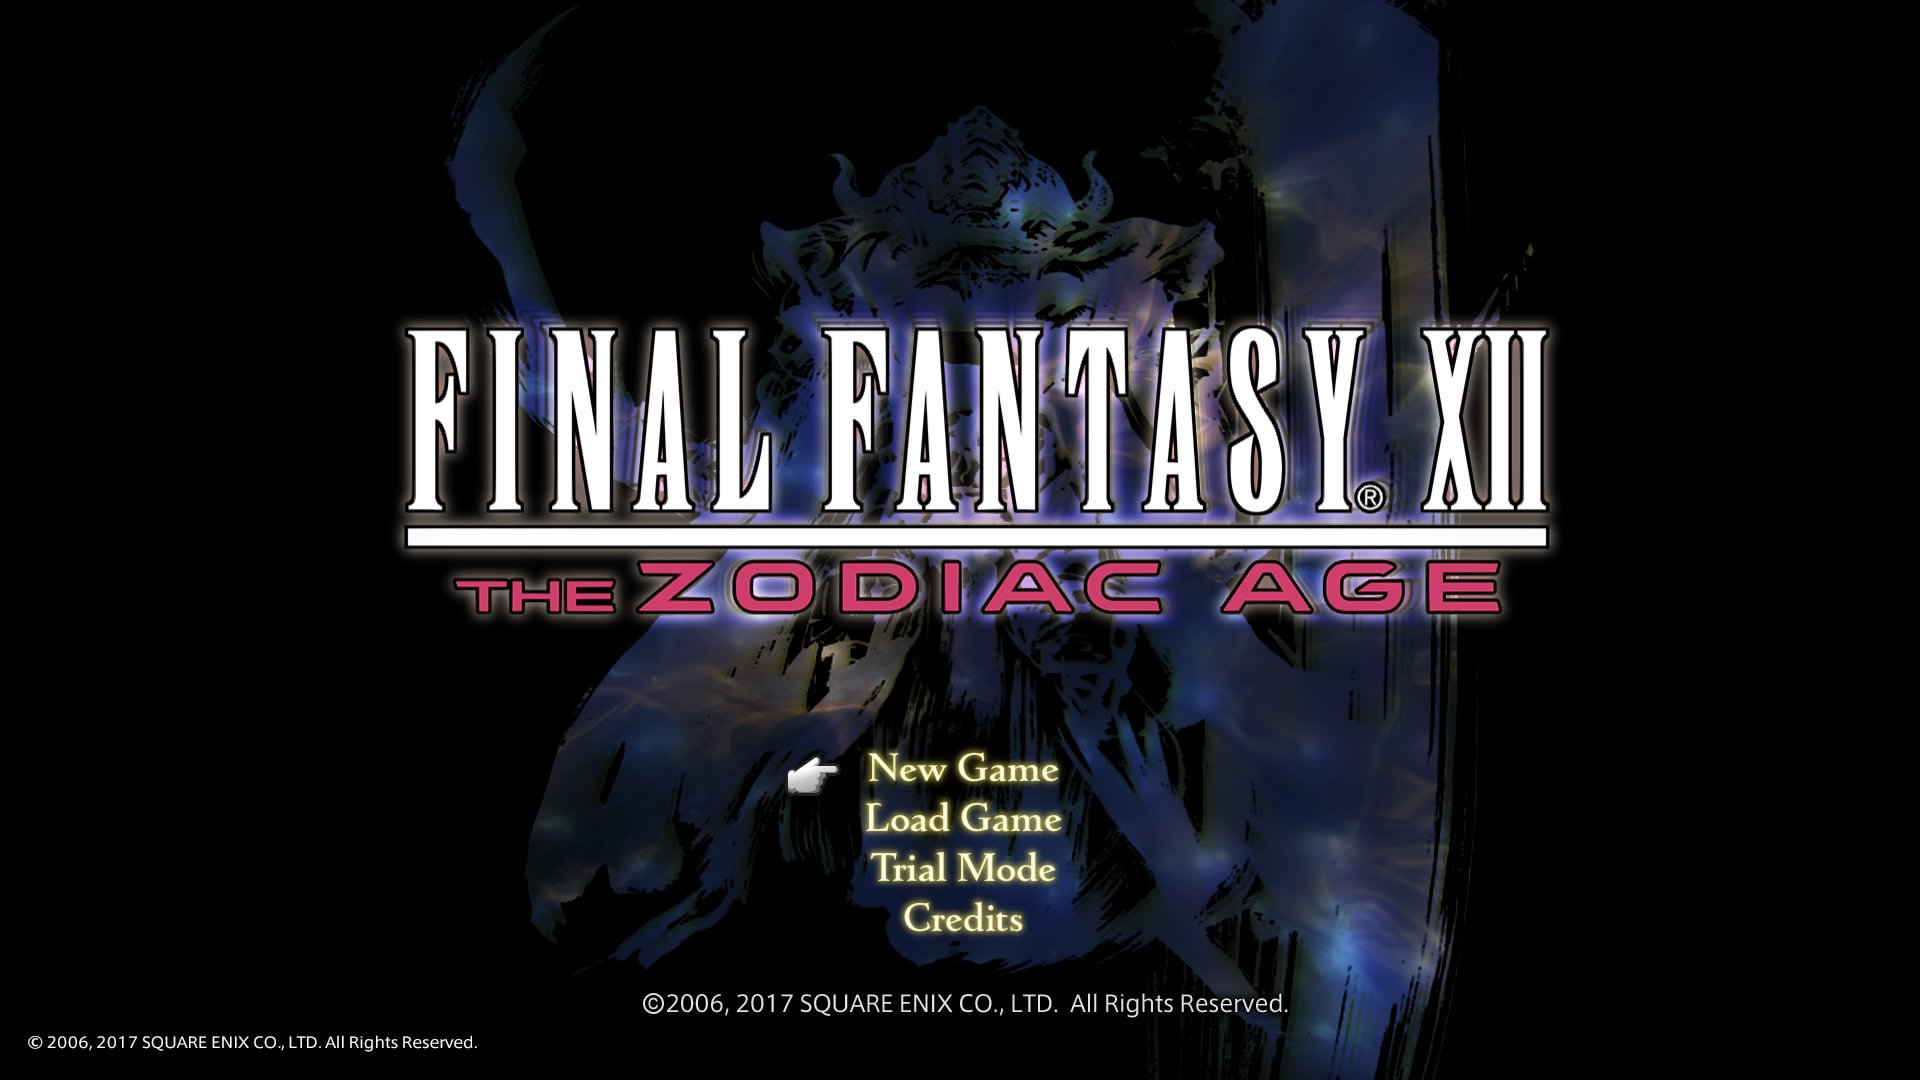 Screenshot of the start screen for Final Fantasy XII: the Zodiac Age on PS4